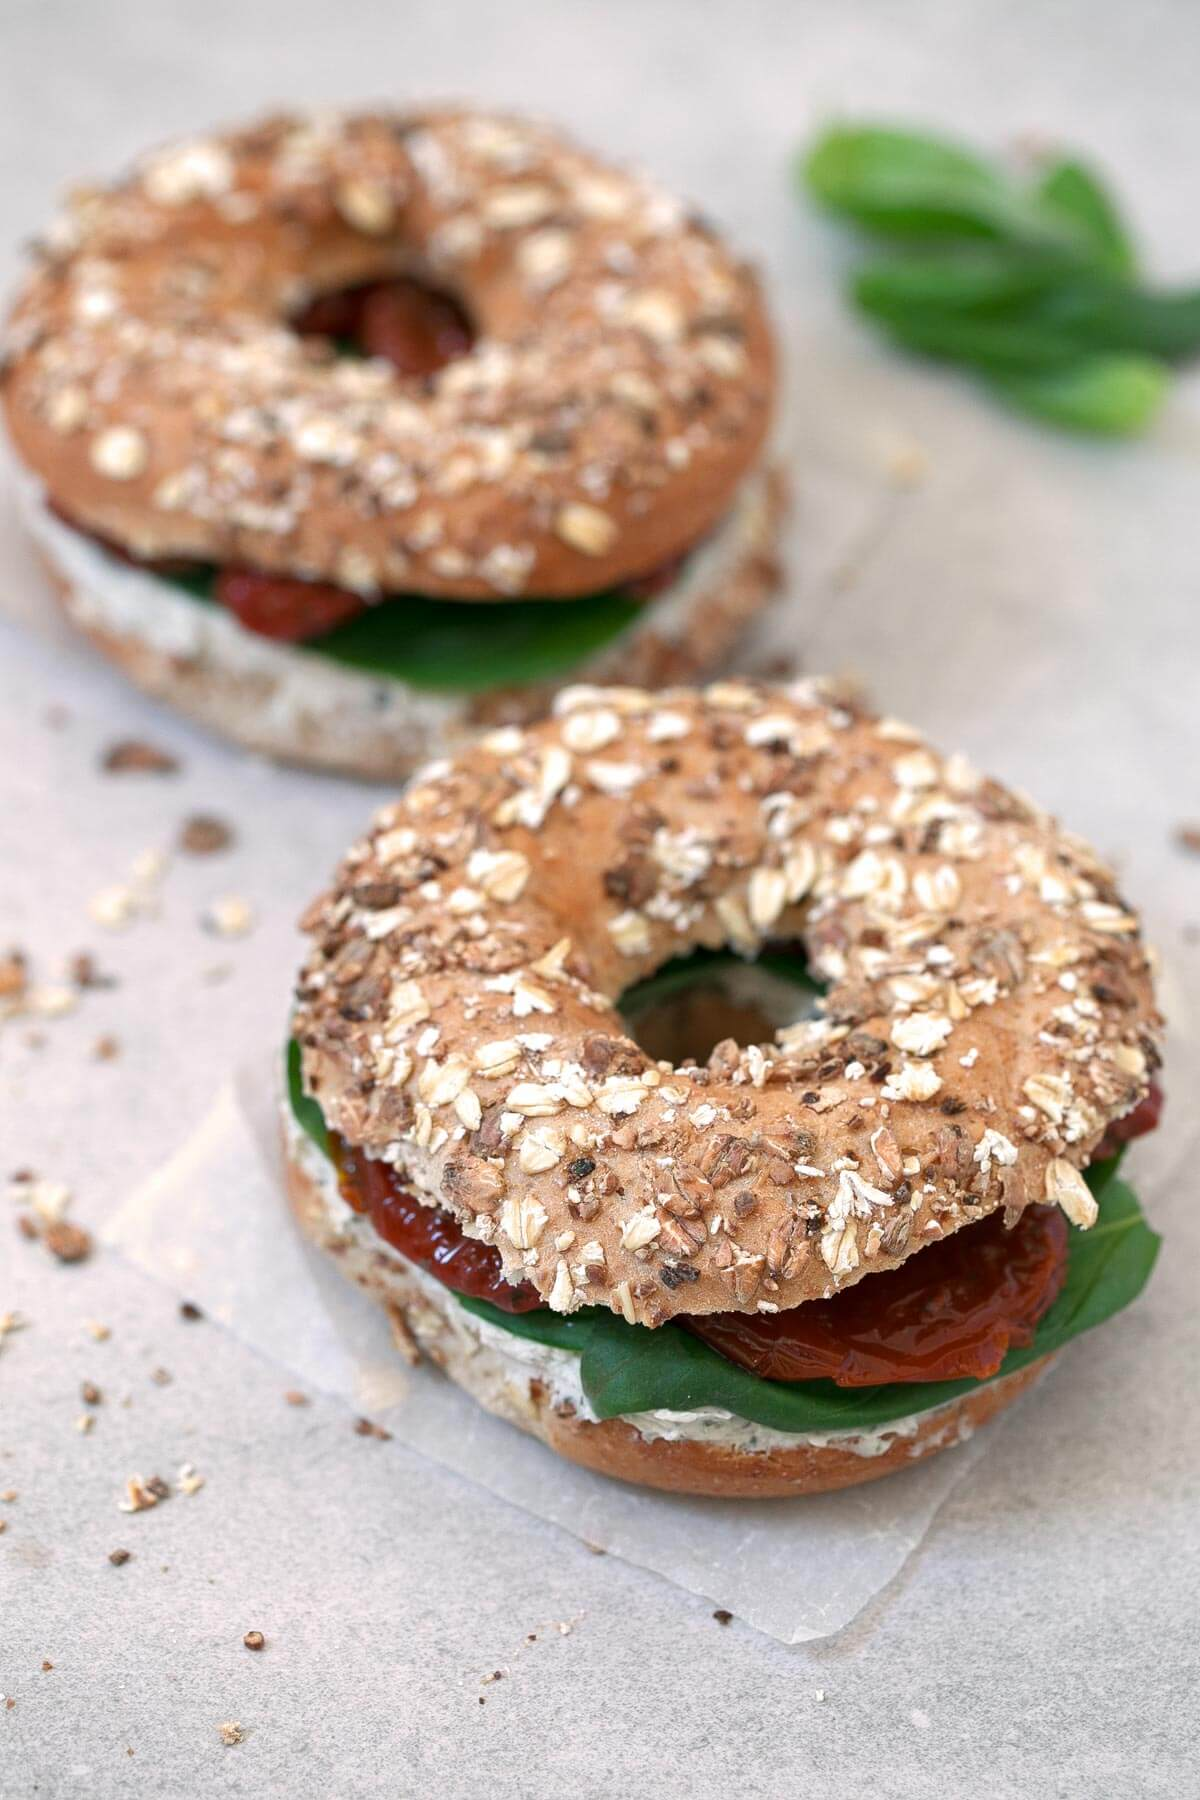 Vegan Bagels.- I love having these vegan bagels for breakfast when I want to pay homage to myself, although they can also be eaten as a snack or for a quick lunch or dinner.